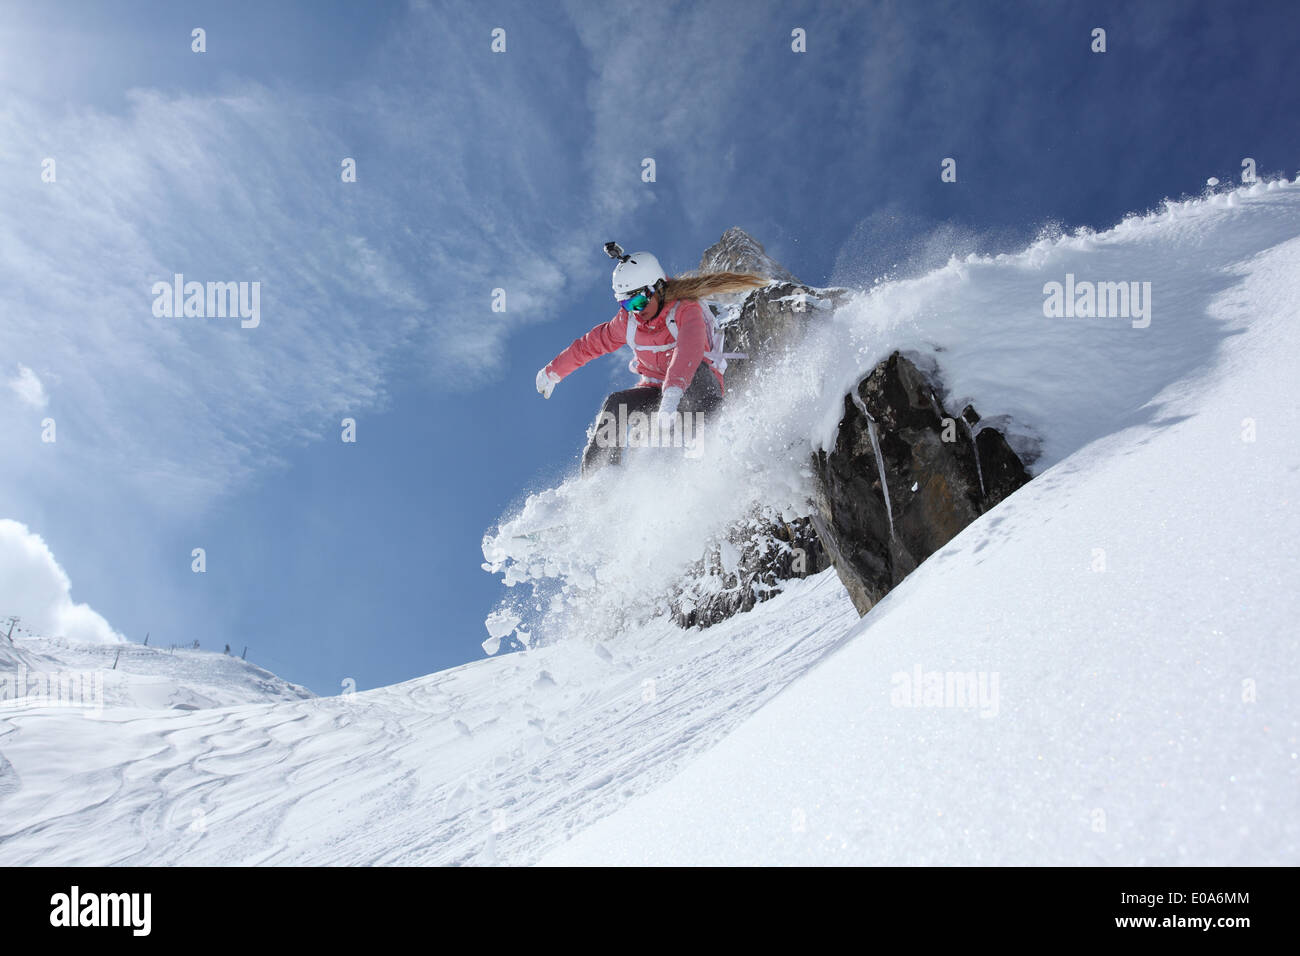 Young female snowboarder jumping off ledge on mountain, Hintertux, Tyrol, Austria - Stock Image